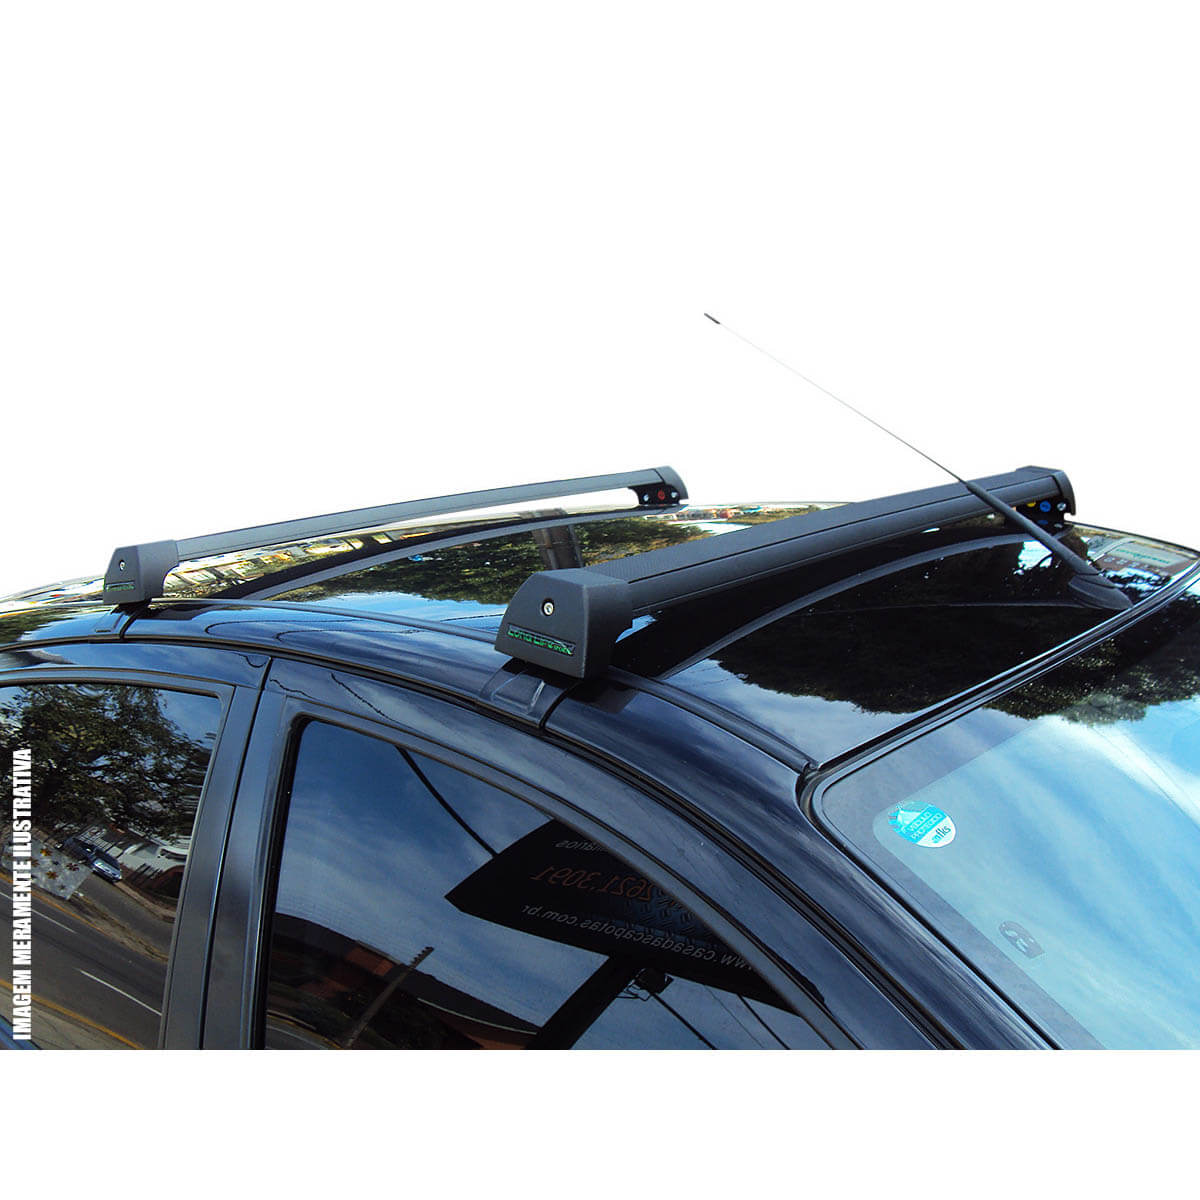 Rack de teto Linea 2009 a 2016 Long Life Sports preto